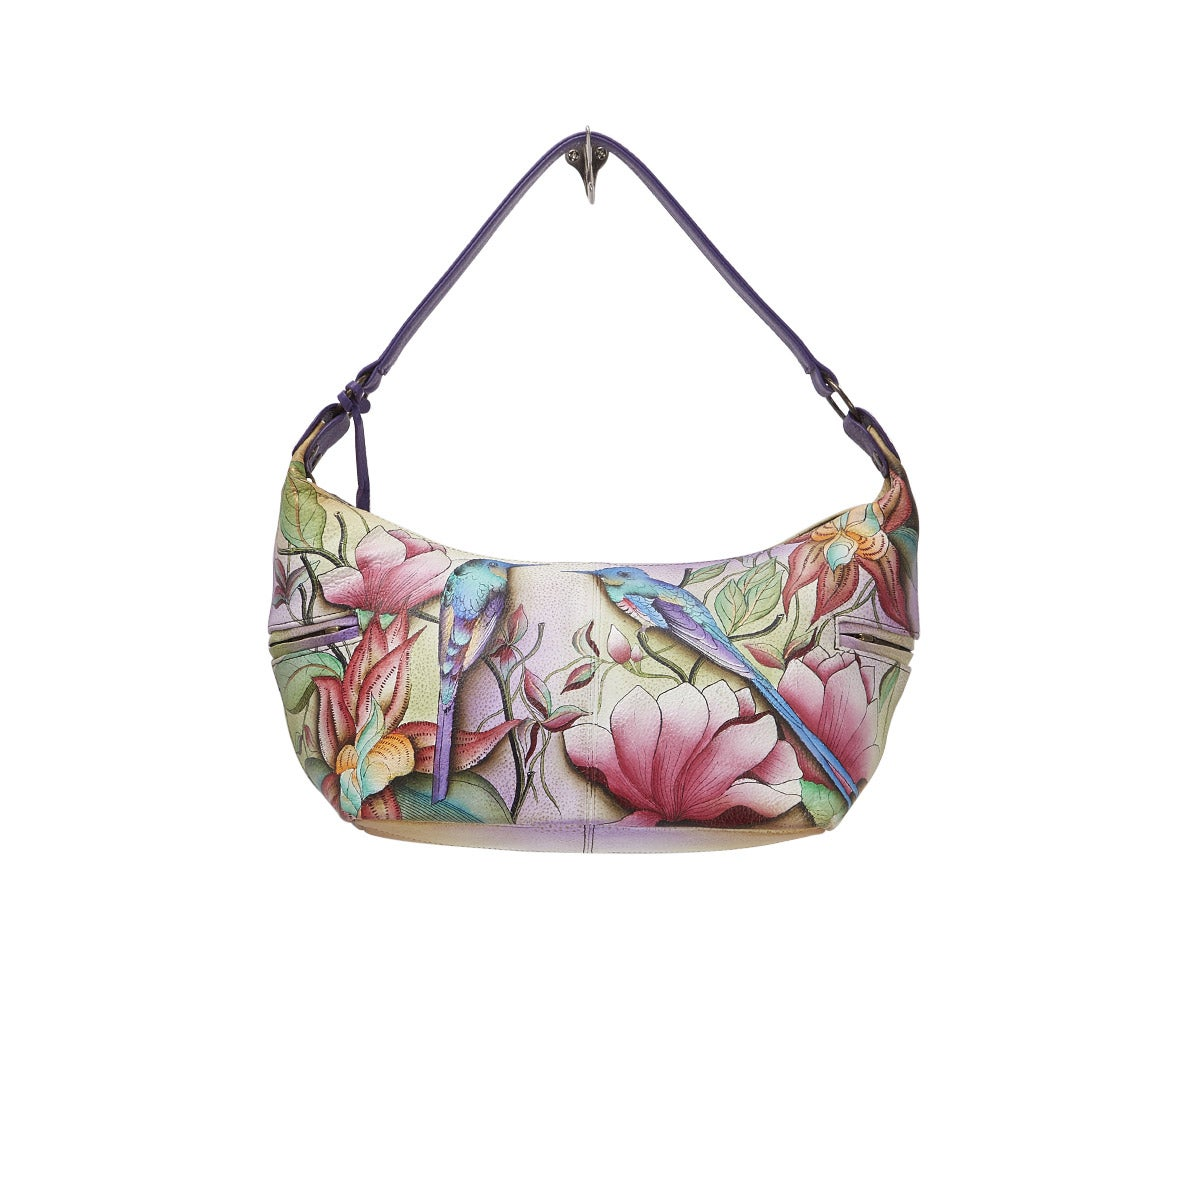 Sac besace Spring Passion, cuir multi